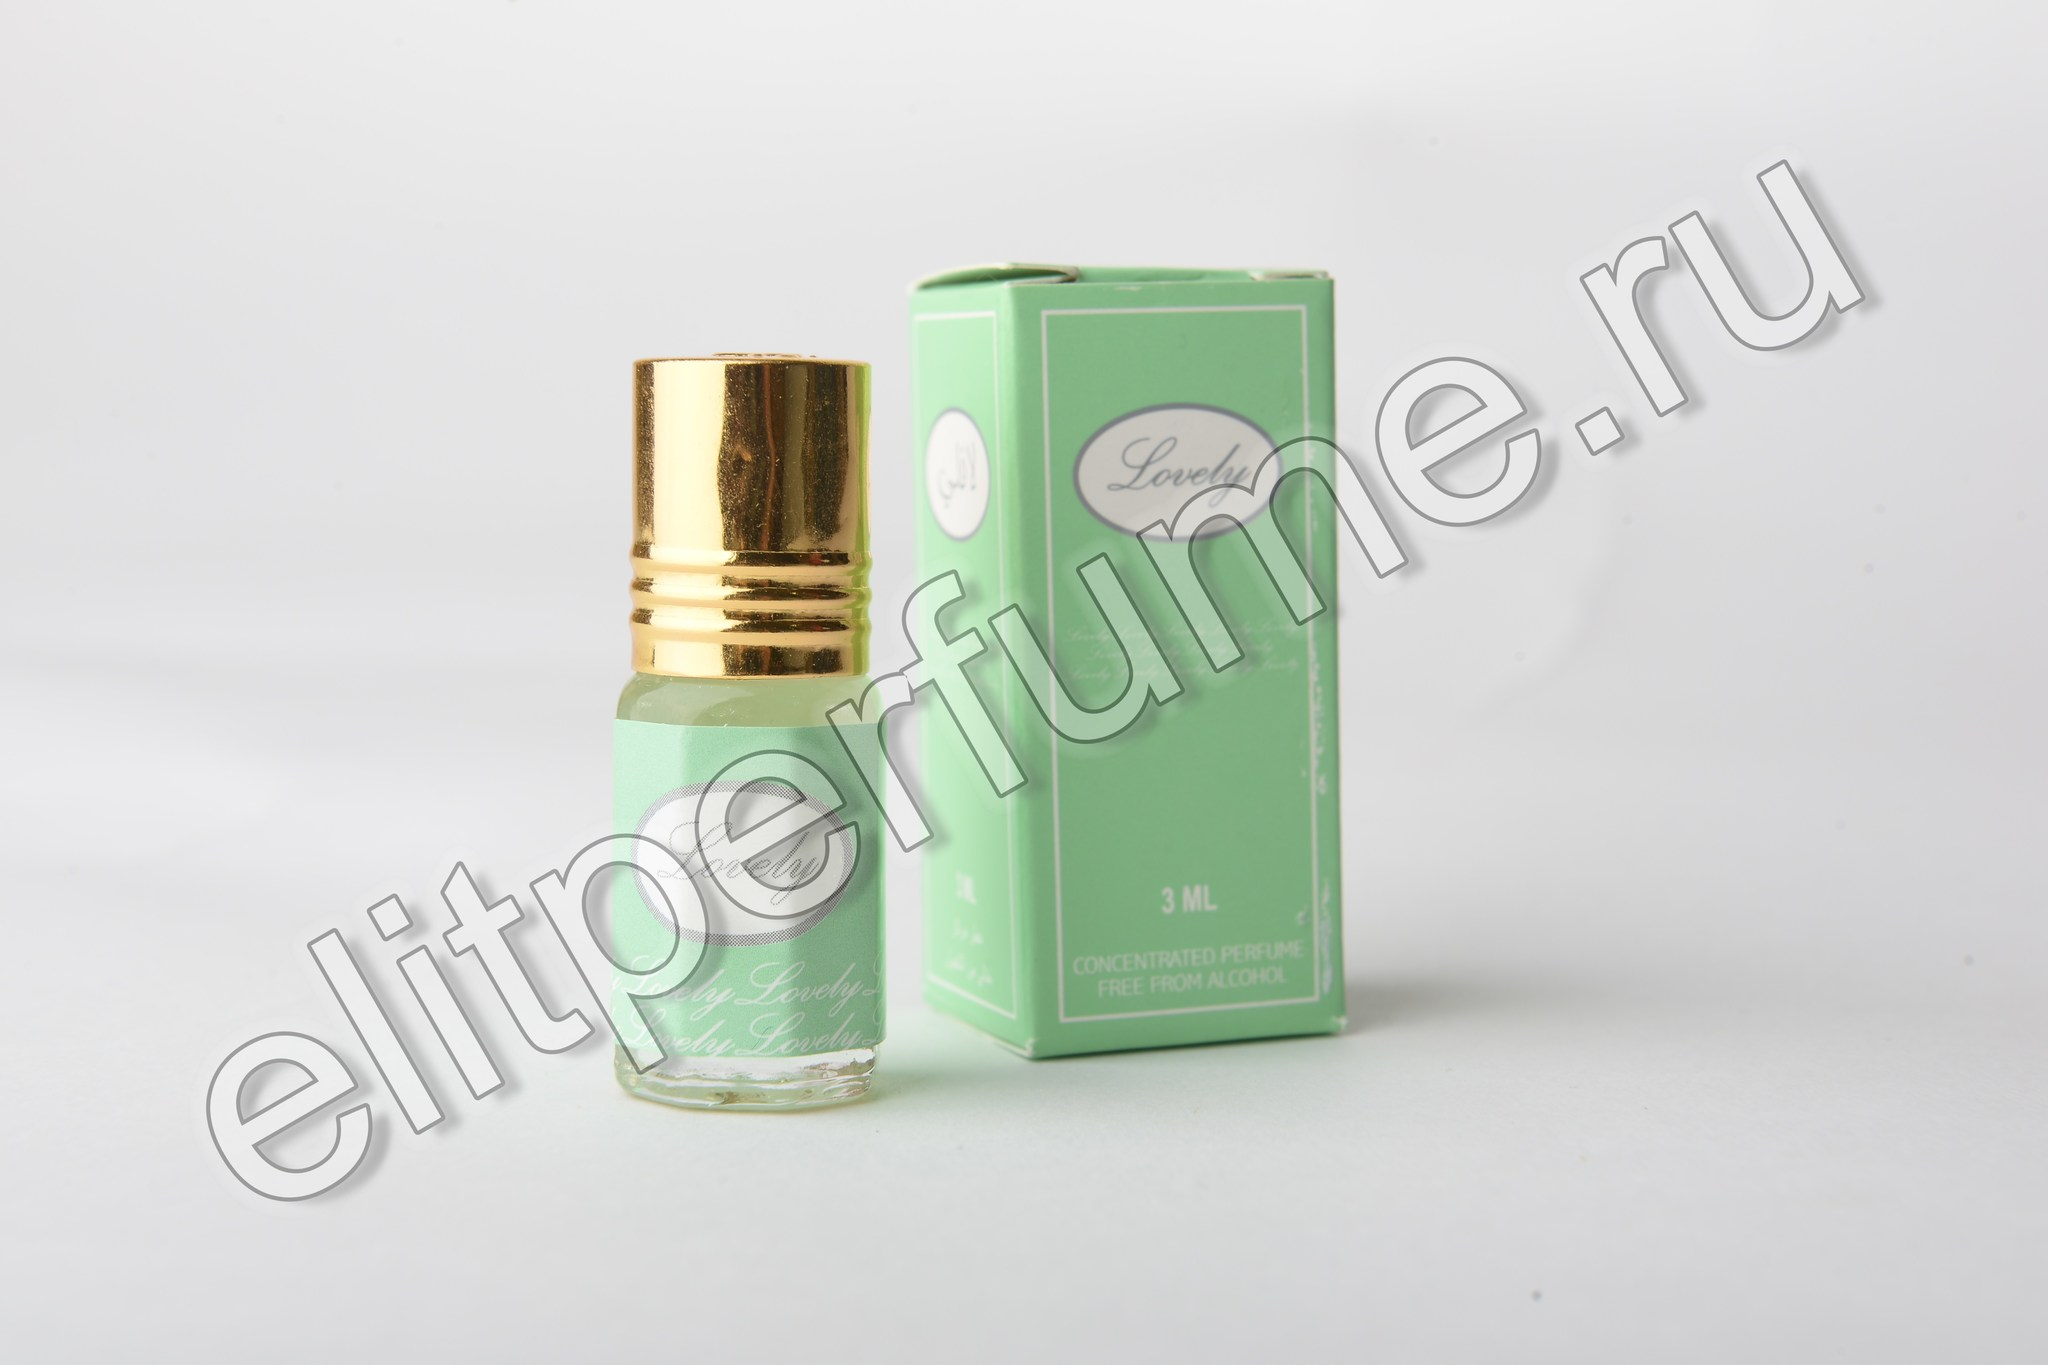 Lovely  3 мл арабские масляные духи от Захра Zahra Perfumes